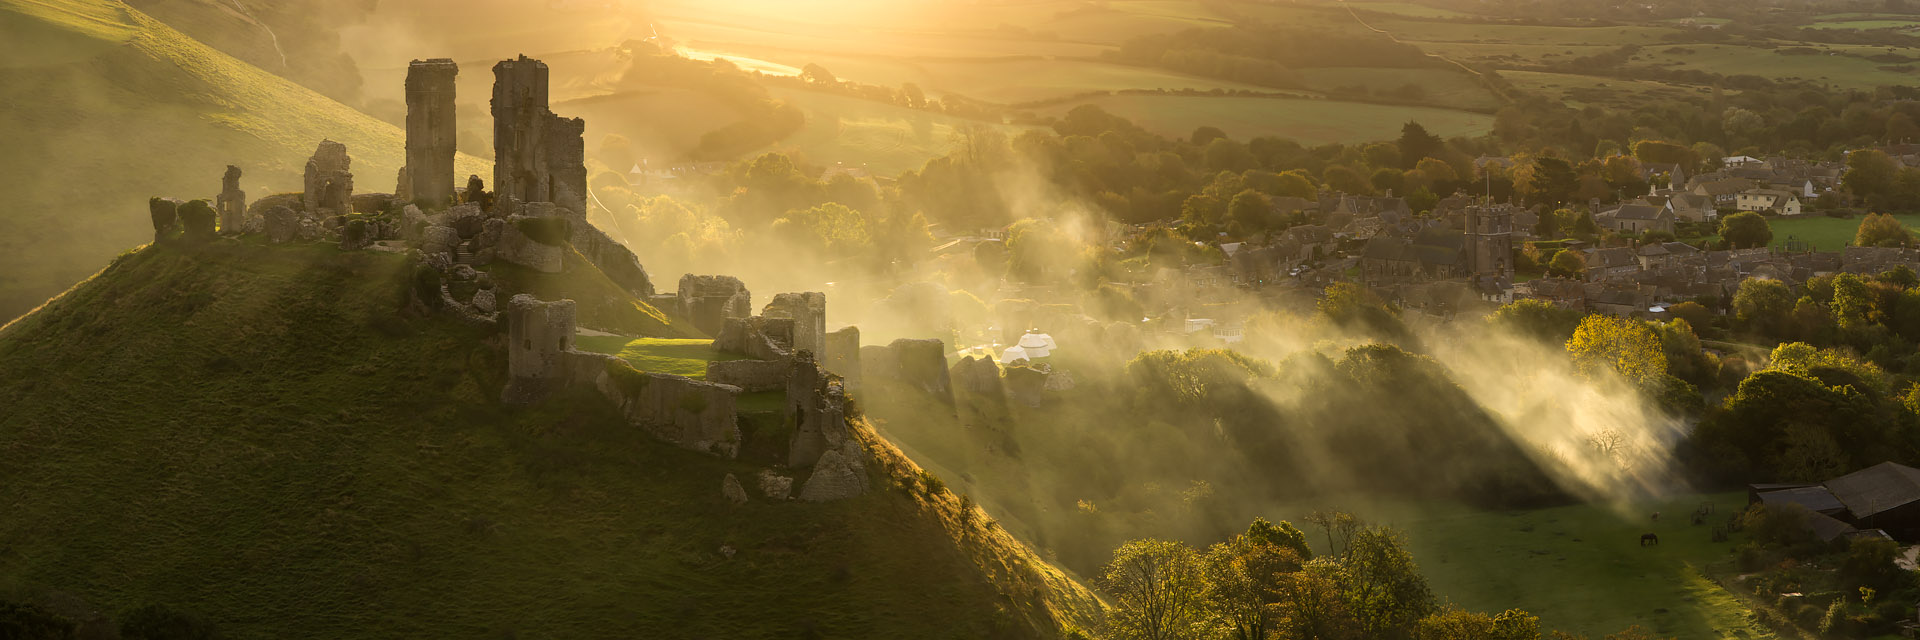 Corfe Castle © David Briard